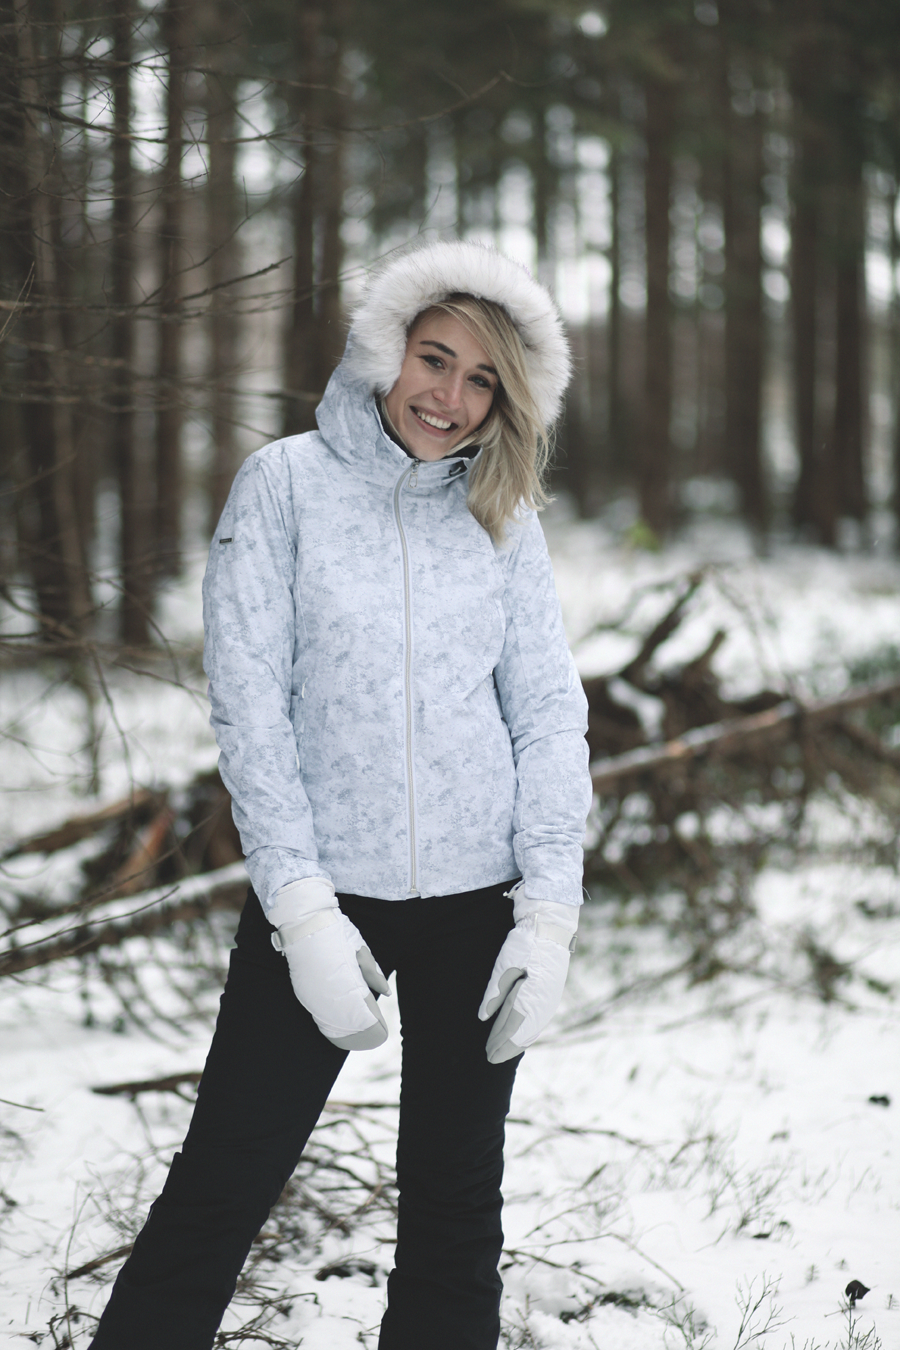 lauralamode-everest-stadium-fashion-.winter-active wear-snow-fashionblogger-blogger-blog-munich-muenchen-deutschland